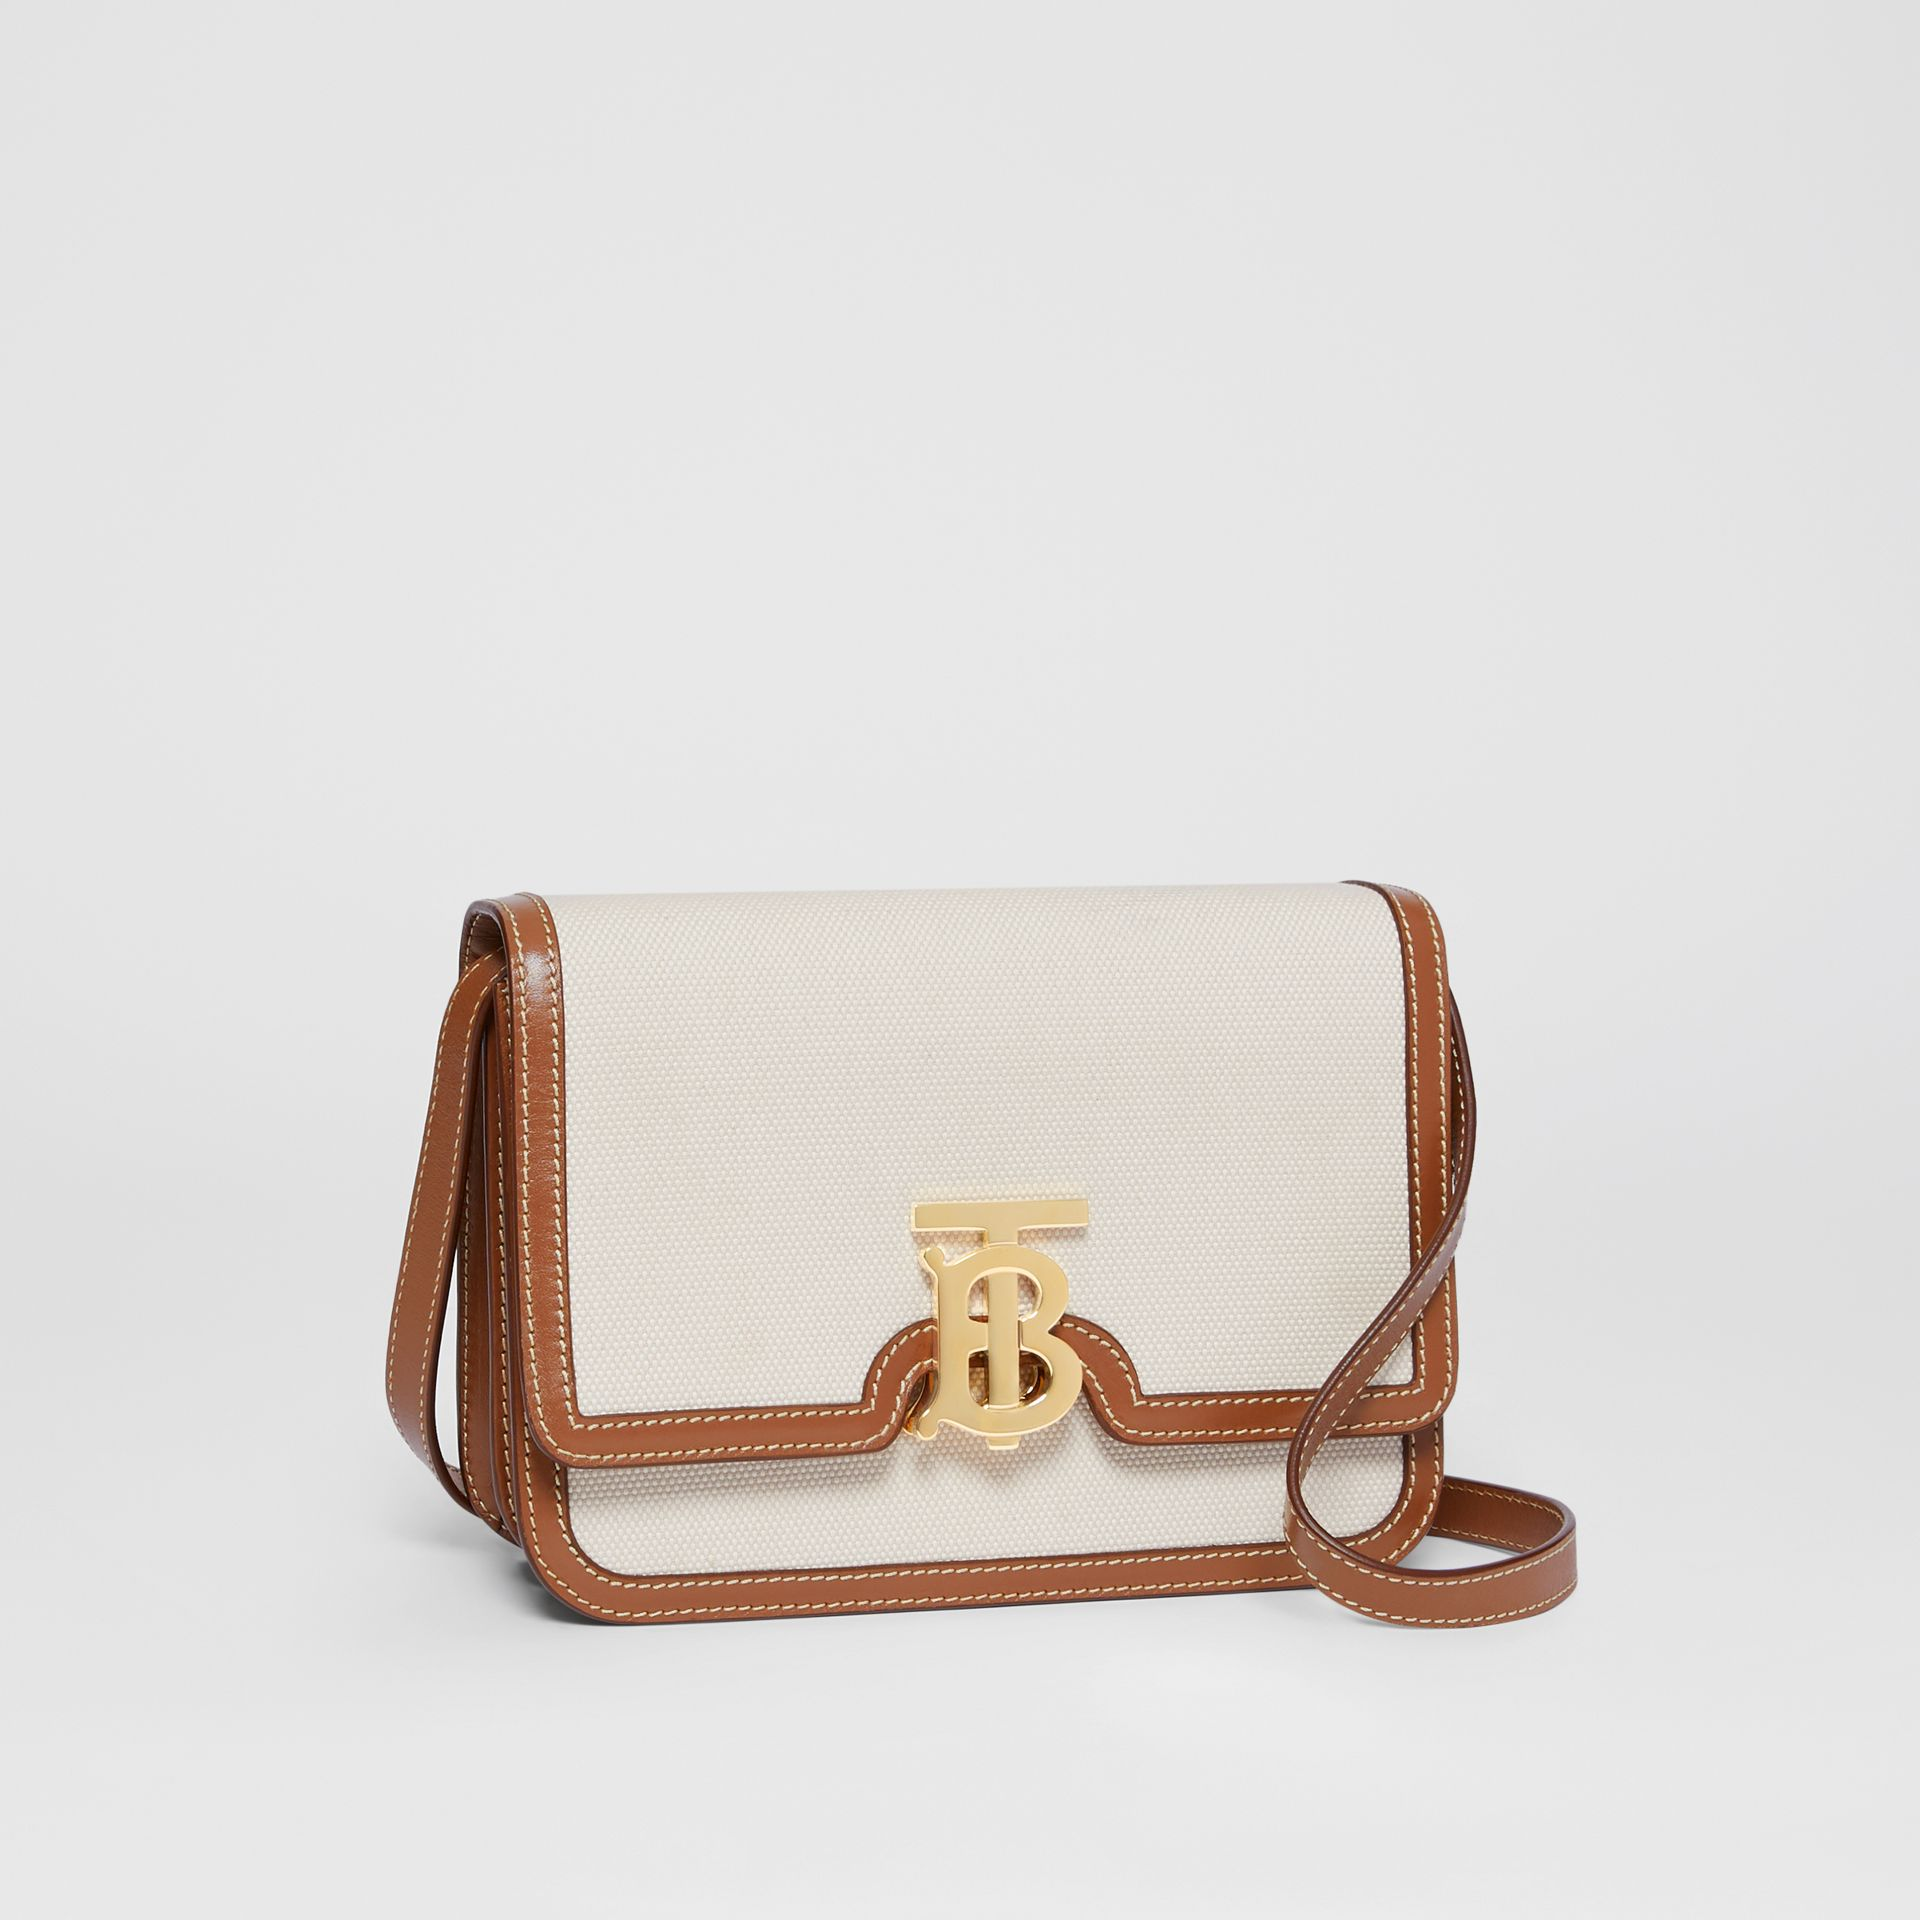 Small Two-tone Canvas and Leather TB Bag in Malt Brown - Women | Burberry - gallery image 6